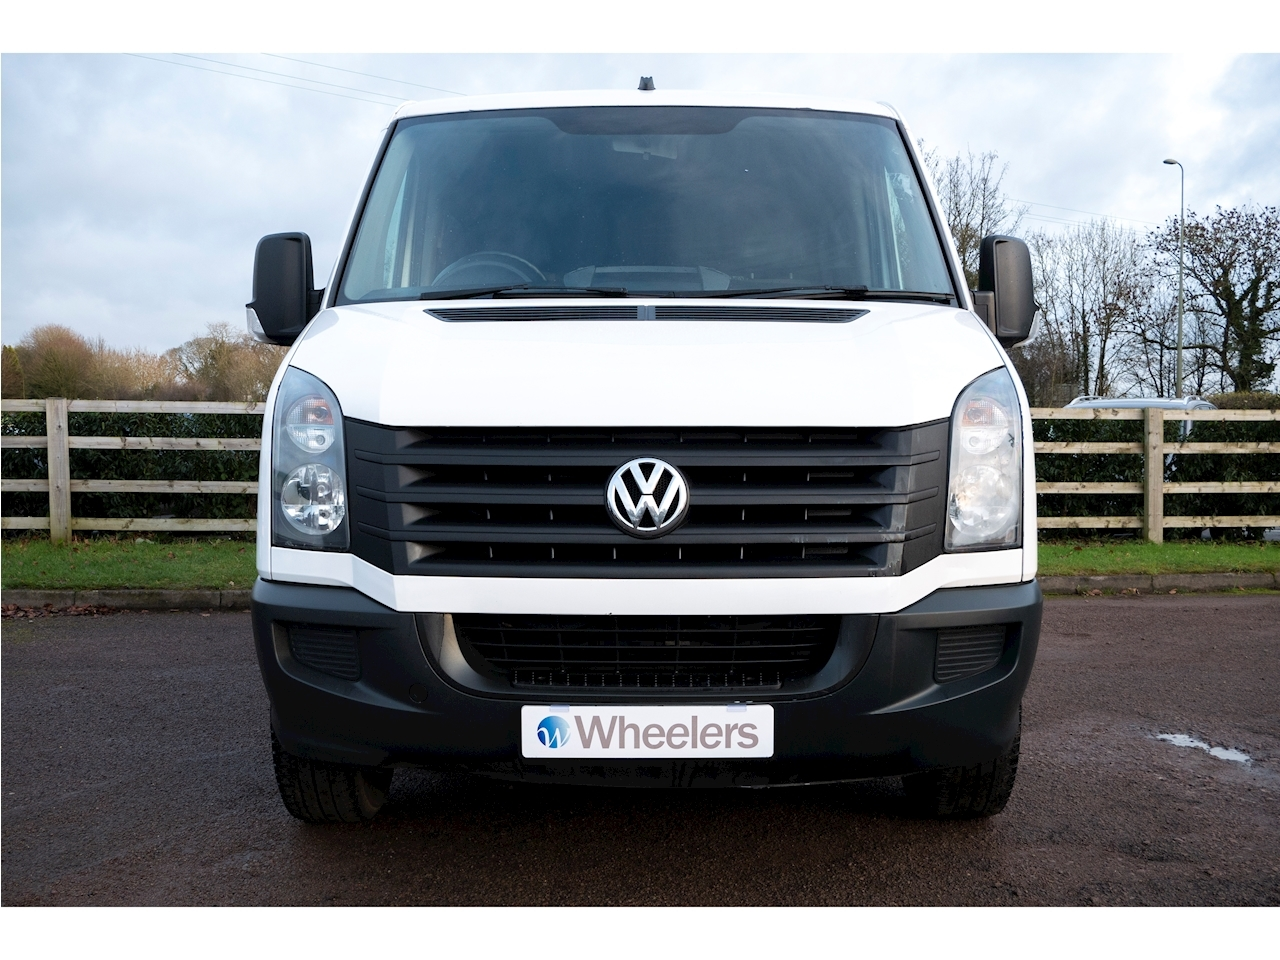 Volkswagen Crafter Cr35 Tdi H/R W/V Van With Side Windows 2.0 Manual Diesel